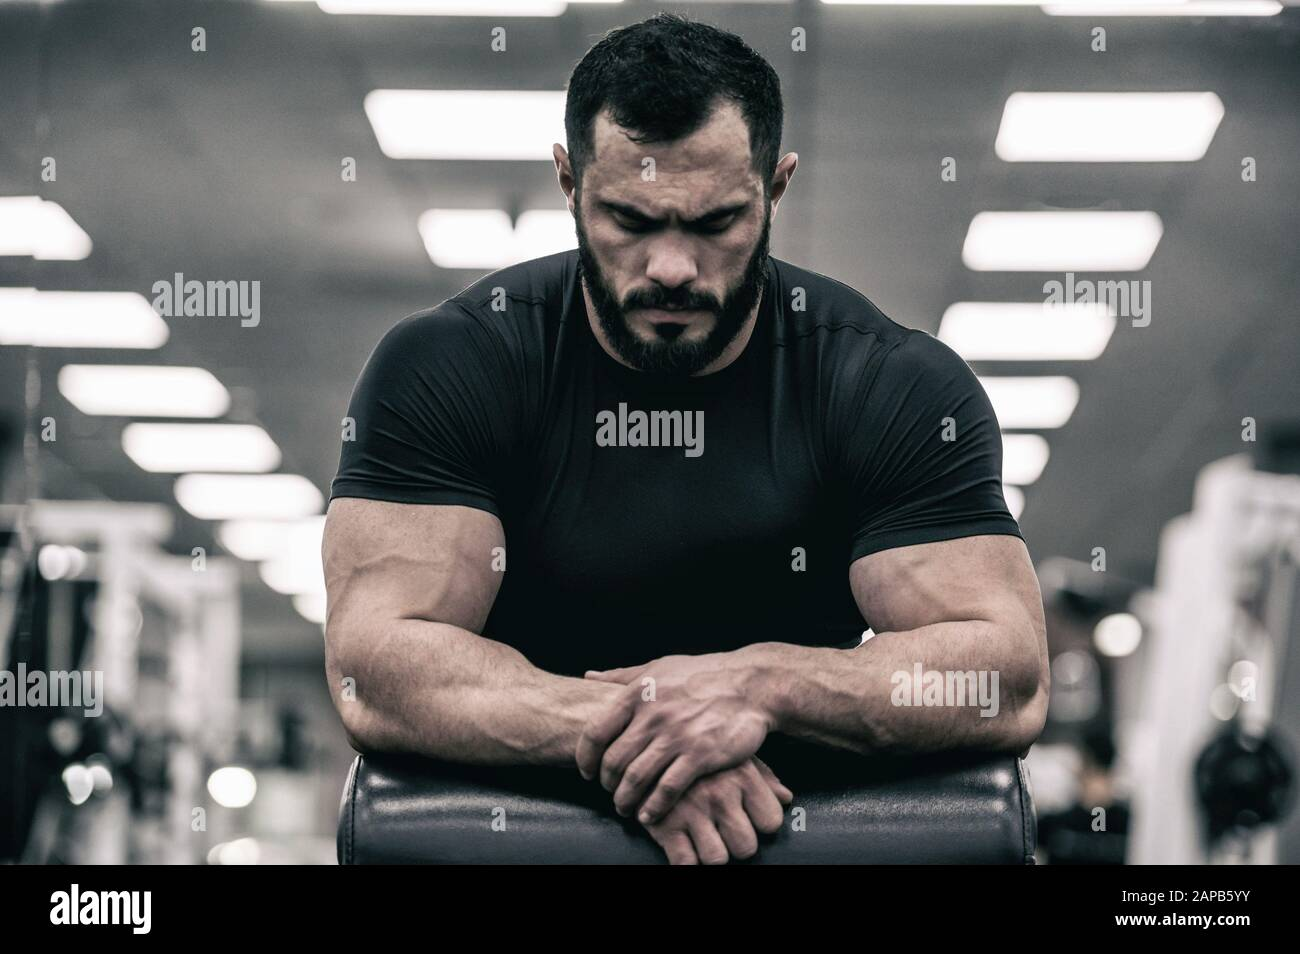 mental mind sport motivation concept of young strong man with beard wearing black jersey concentration relaxation in sport gym Stock Photo